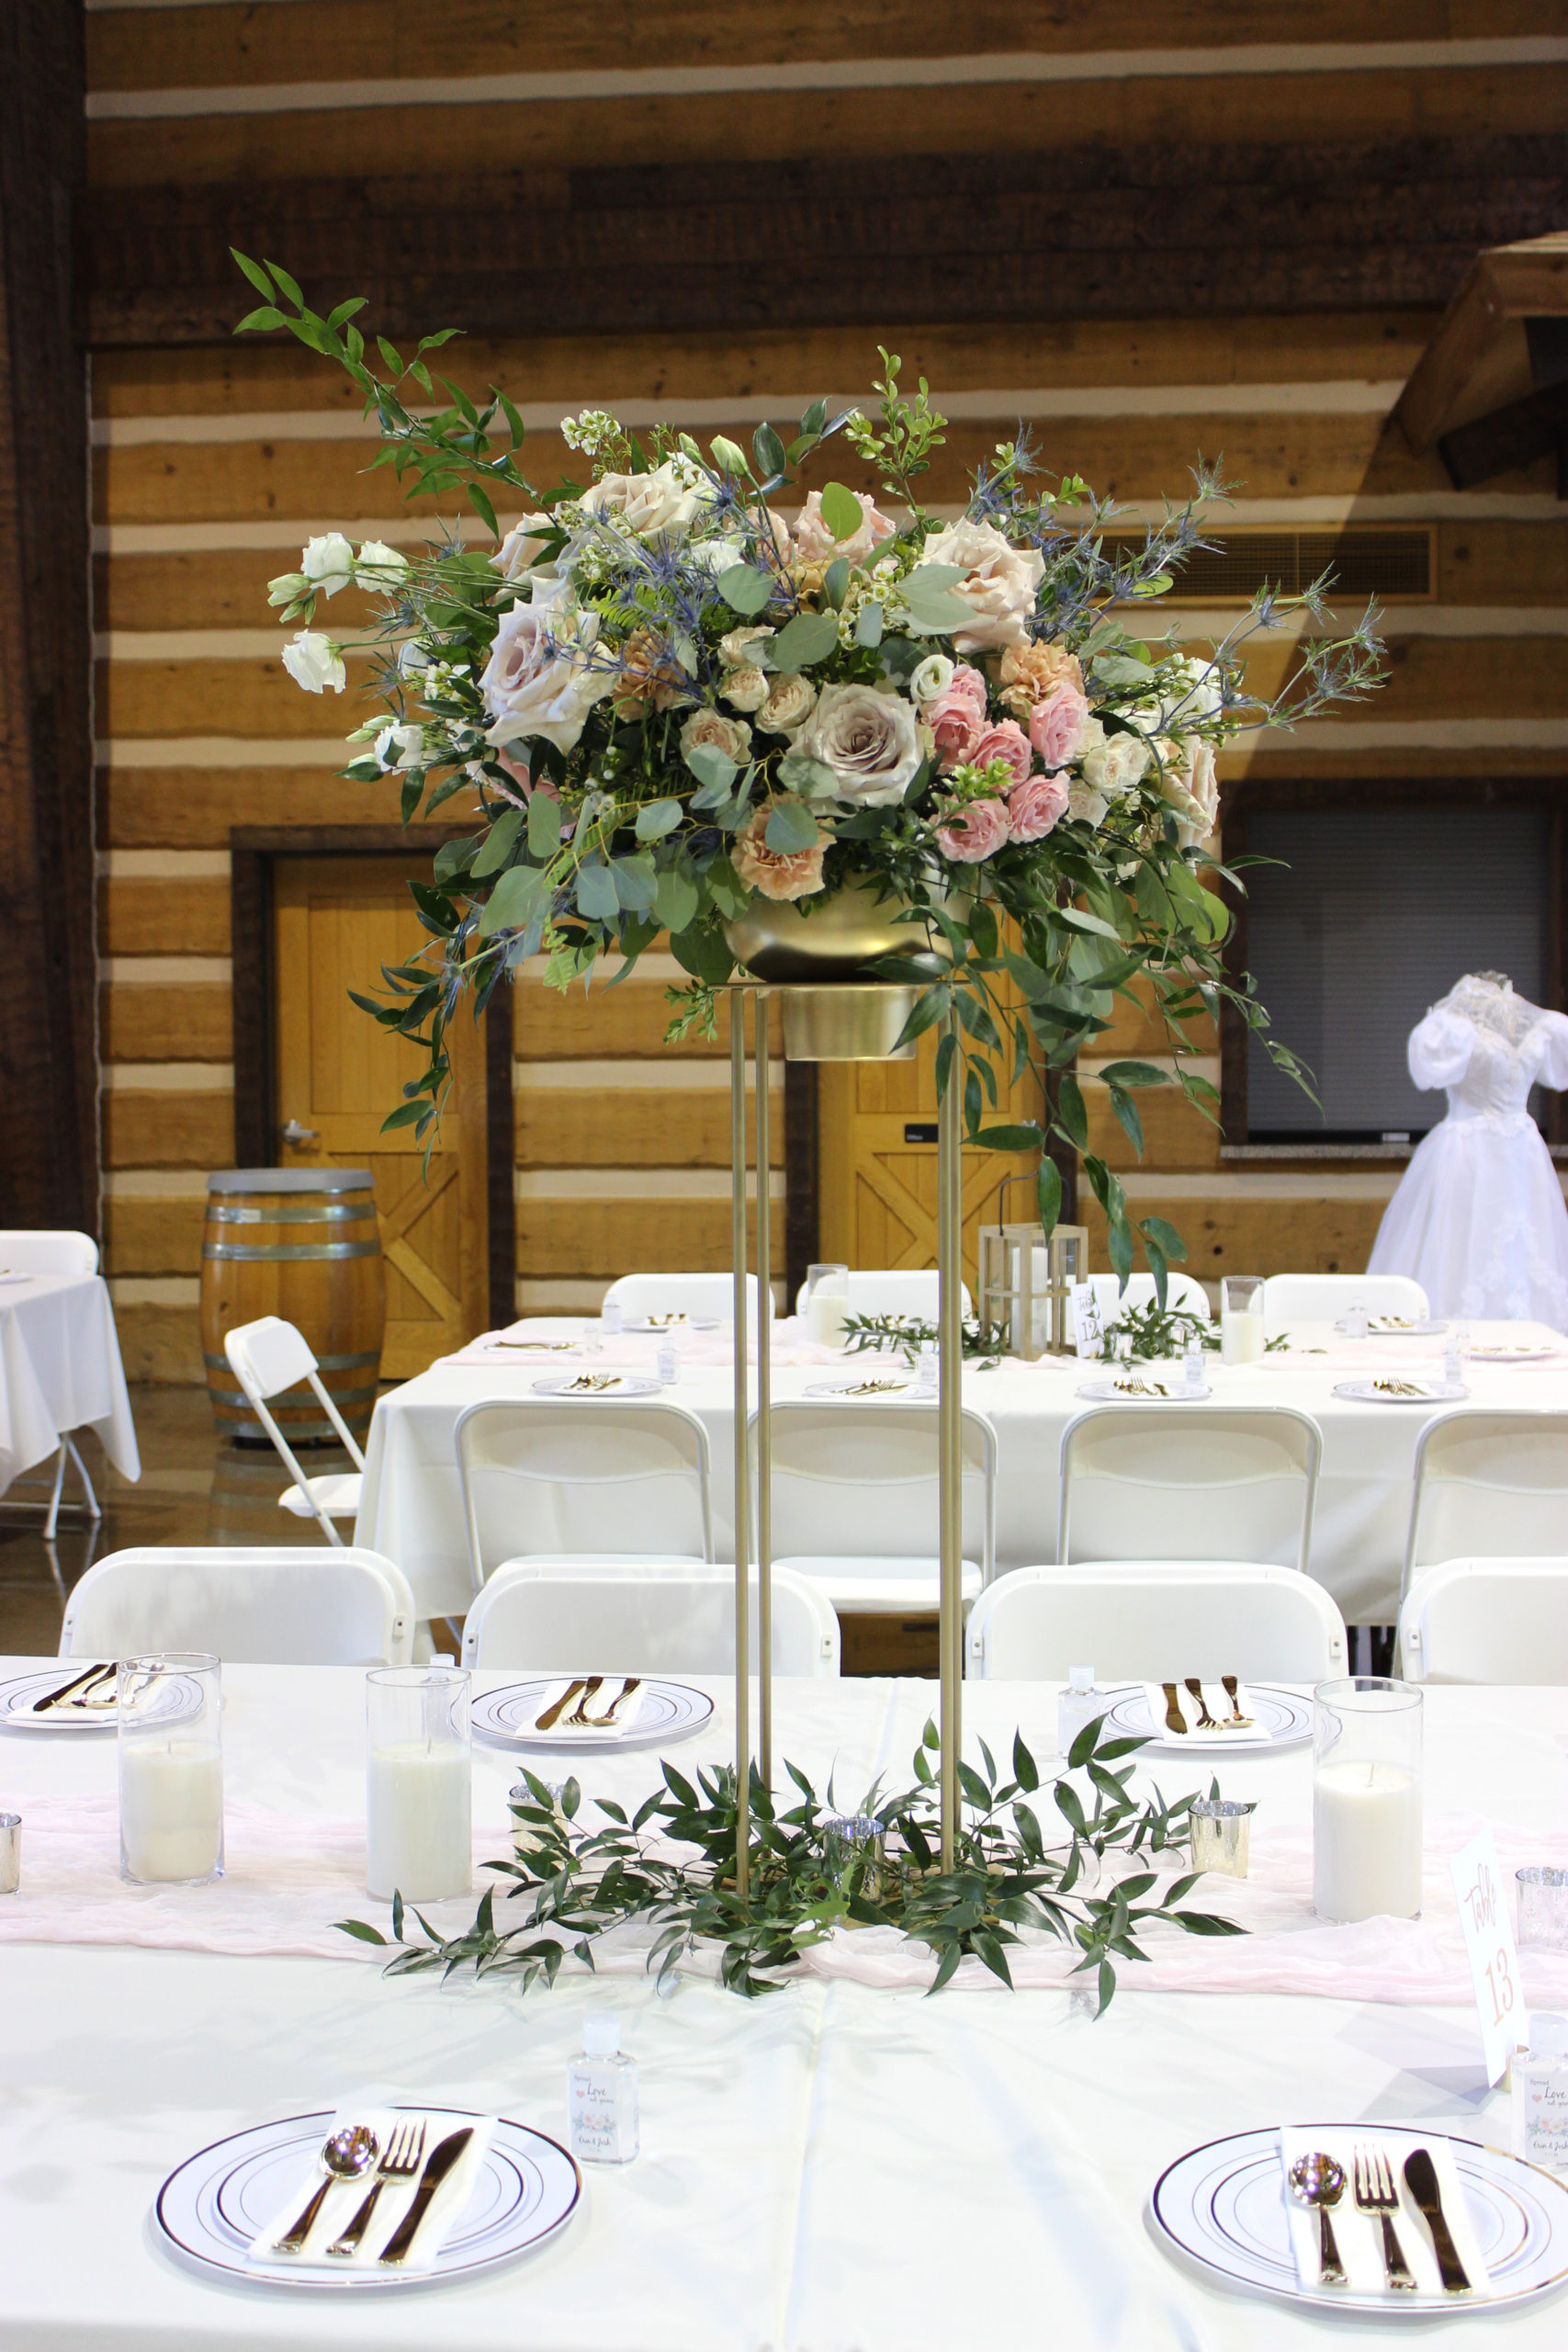 elevated floral centerpiece created by florist emerald design for an evansville wedding